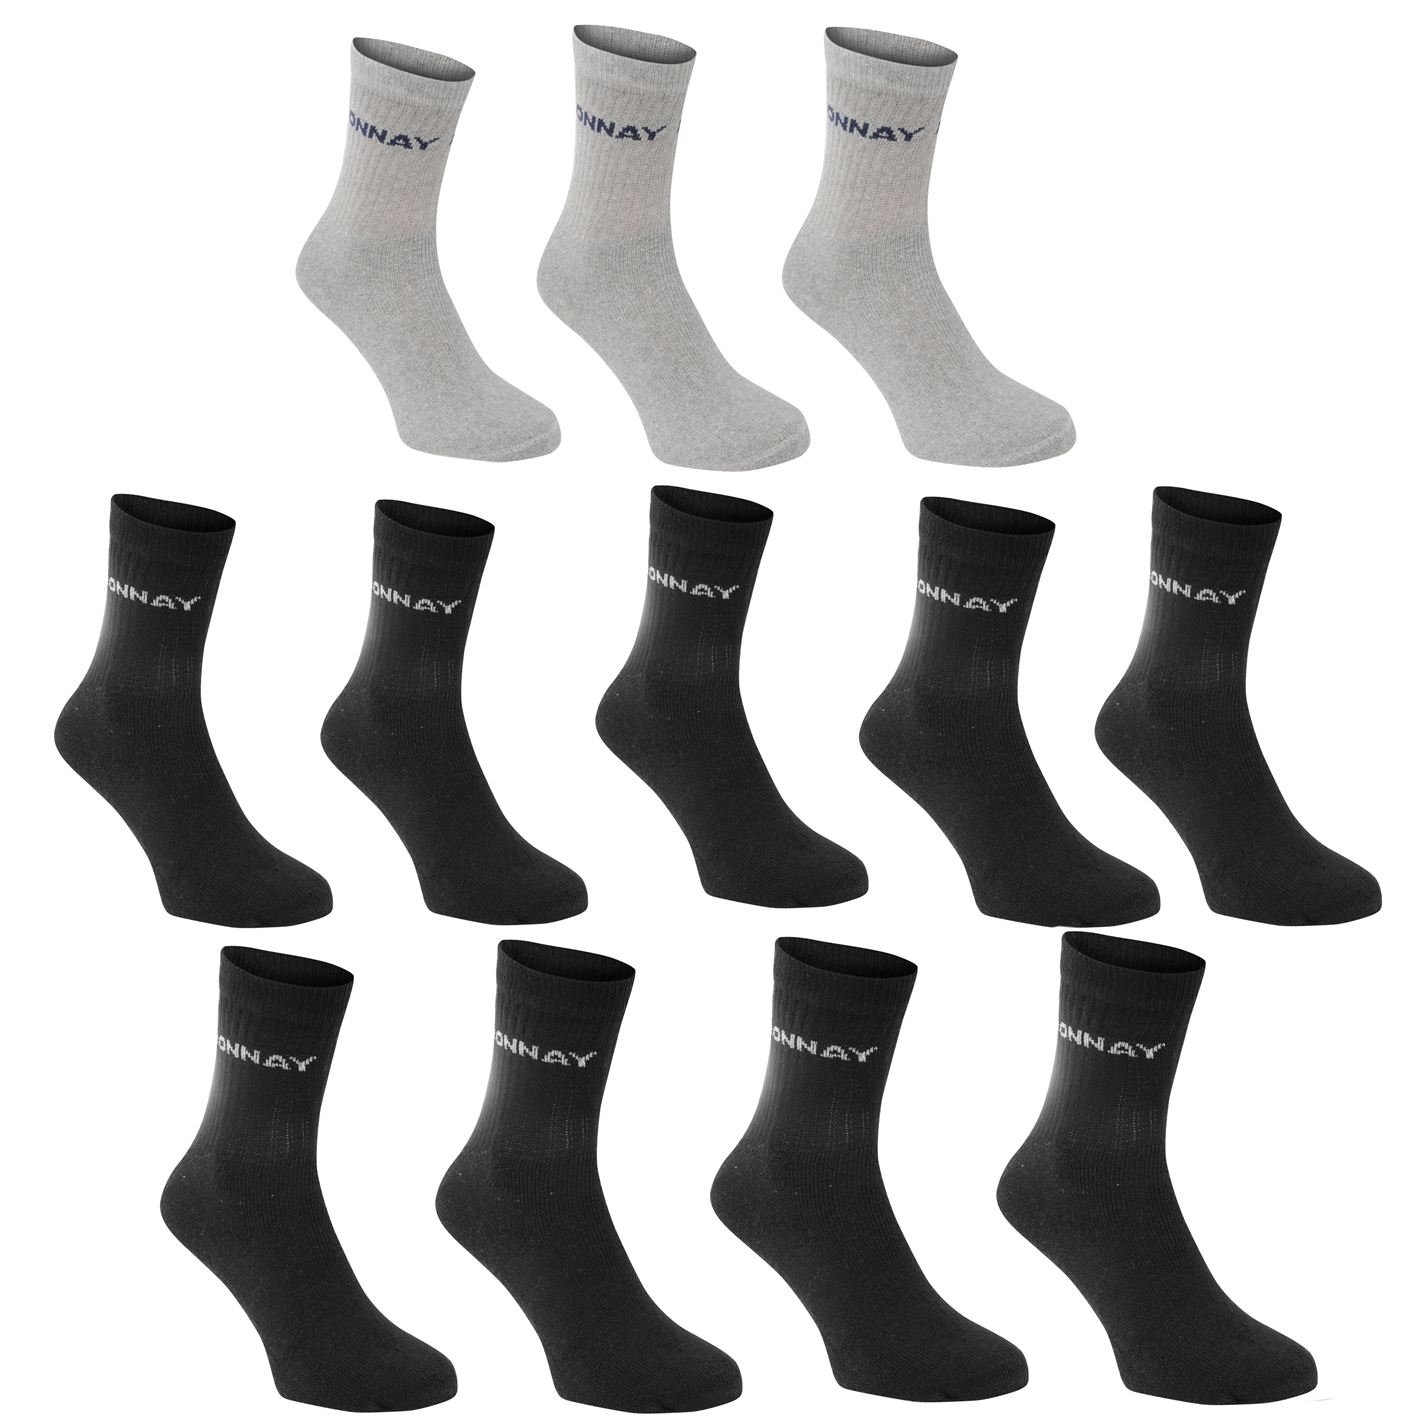 Donnay Kids Crew Socks 12 Pack